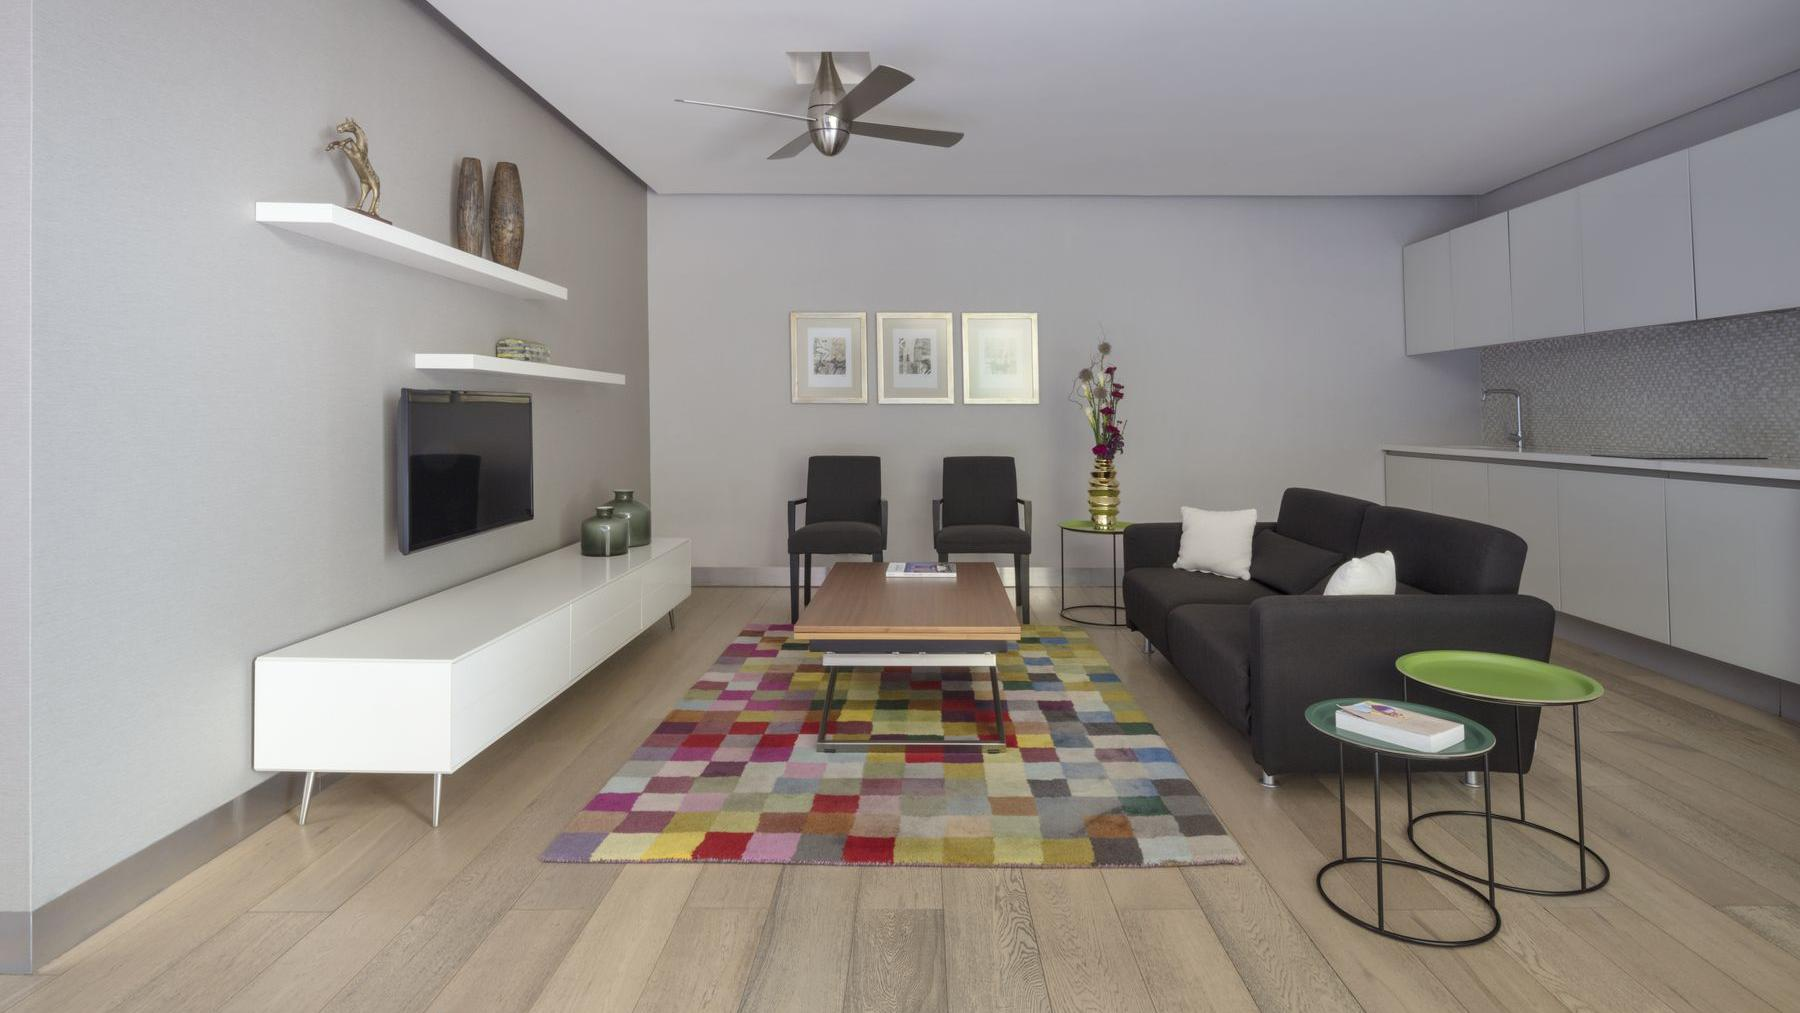 living room area with black sofa, colorful carpet and modern decor